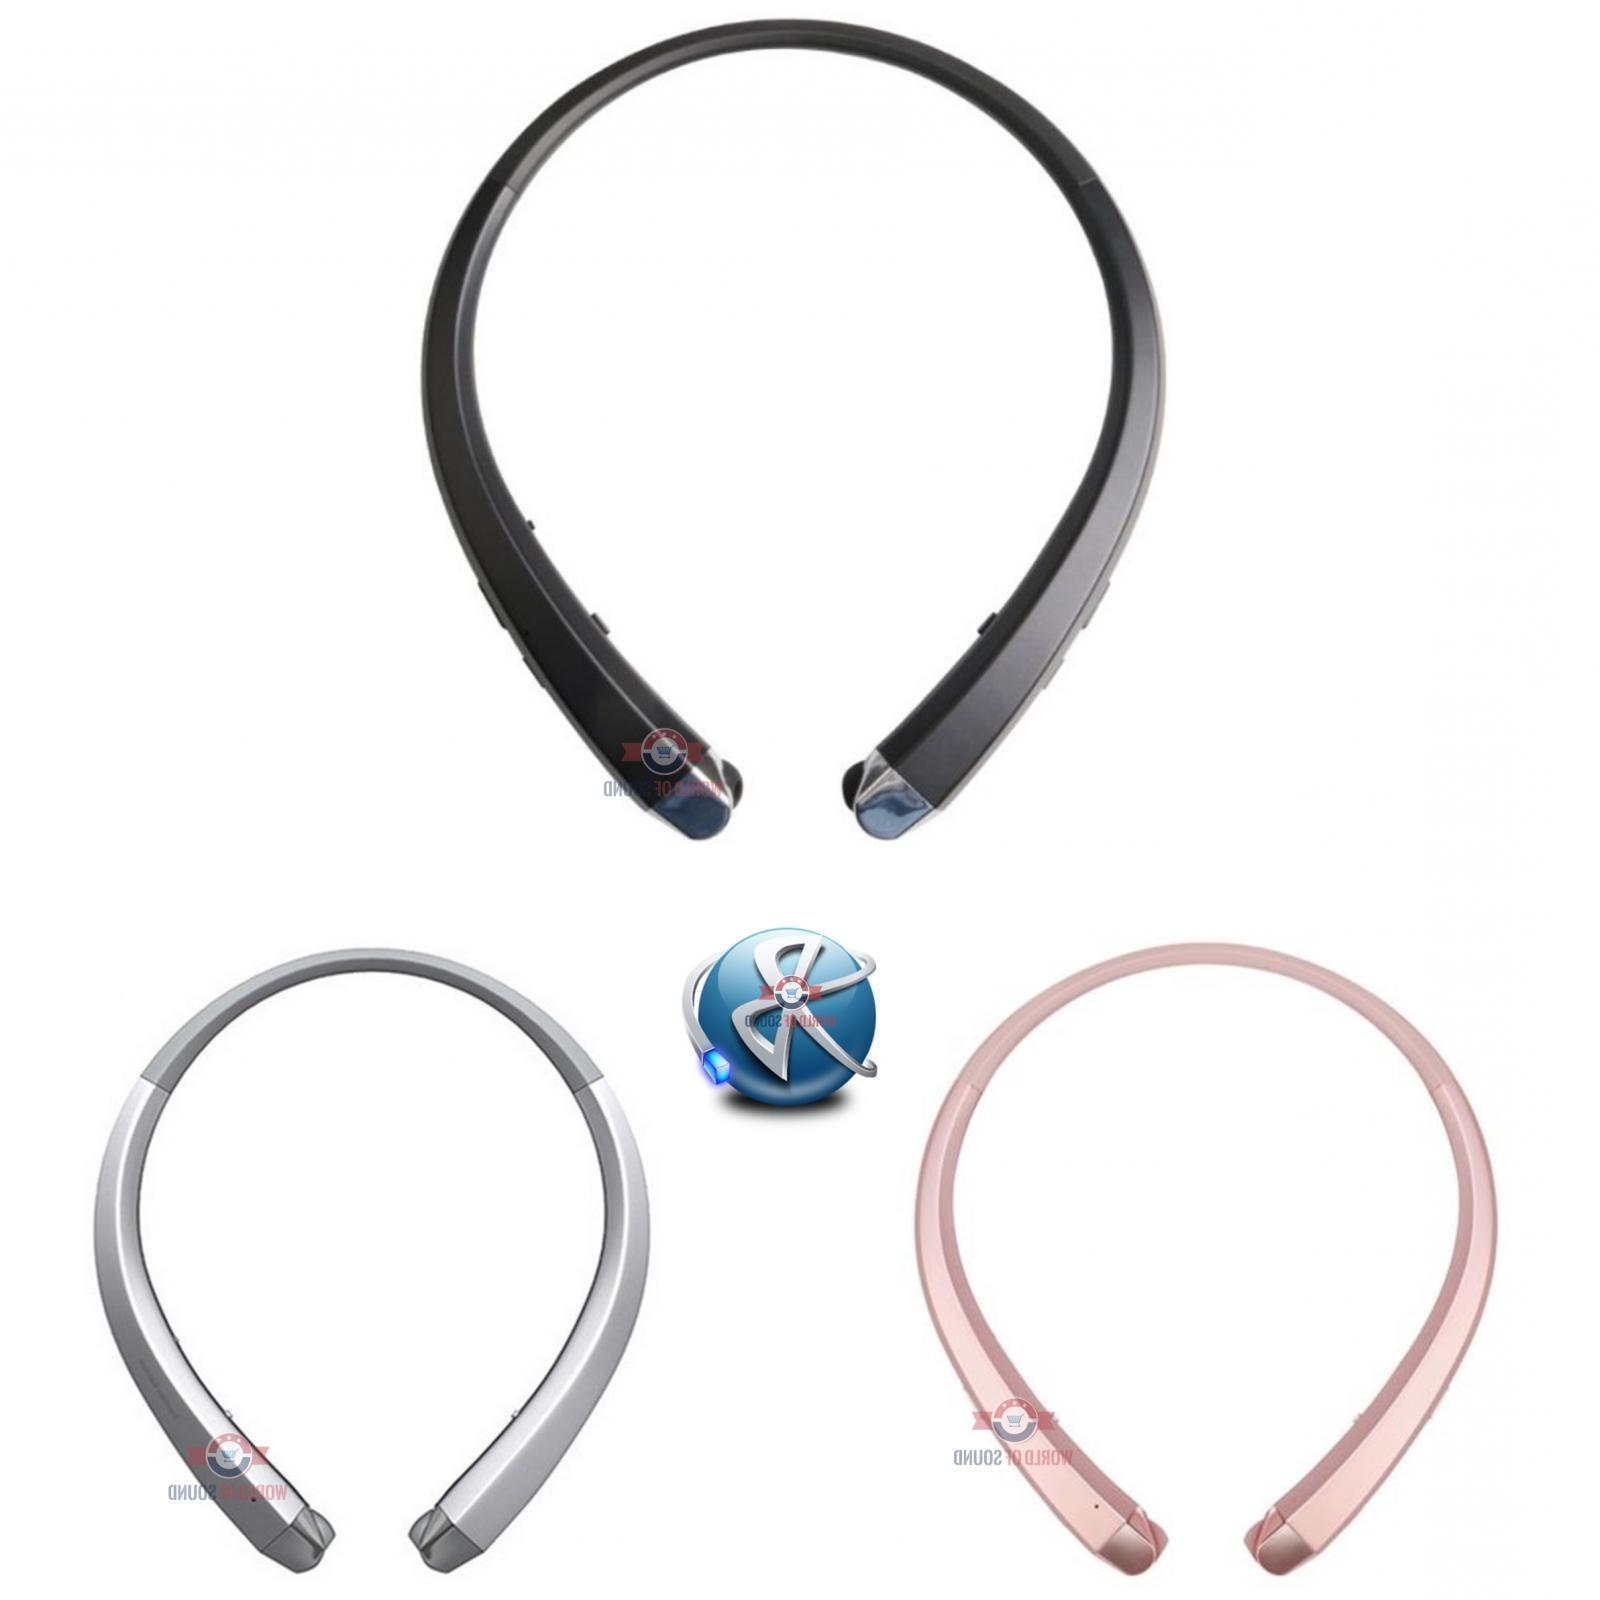 bluetooth wireless headset stereo headphone earphone sport